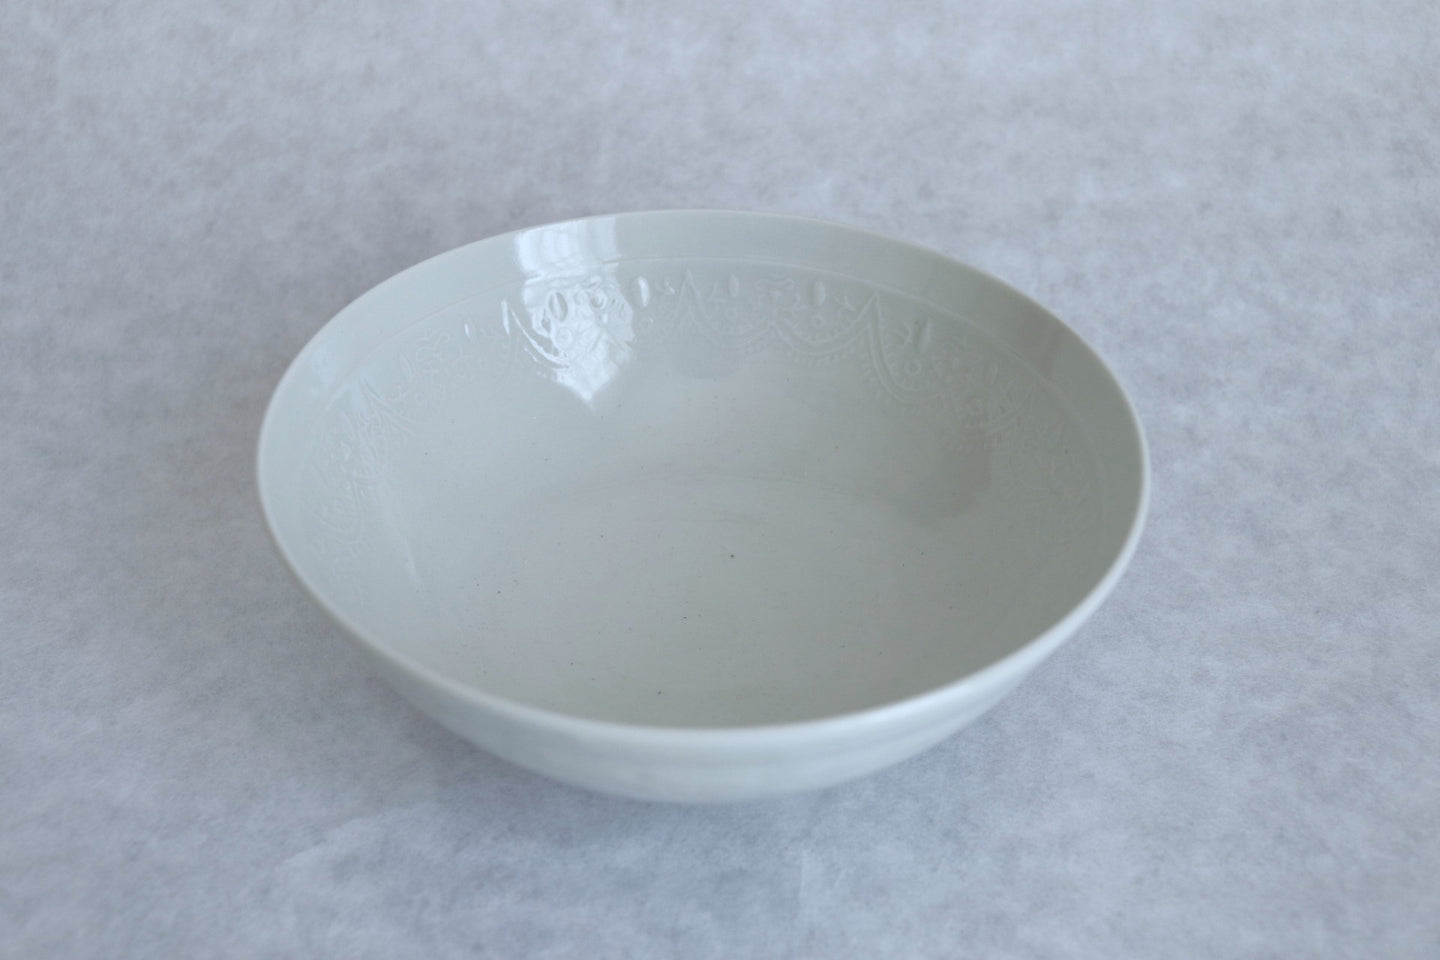 Tanaka Pottery Manufacture Design